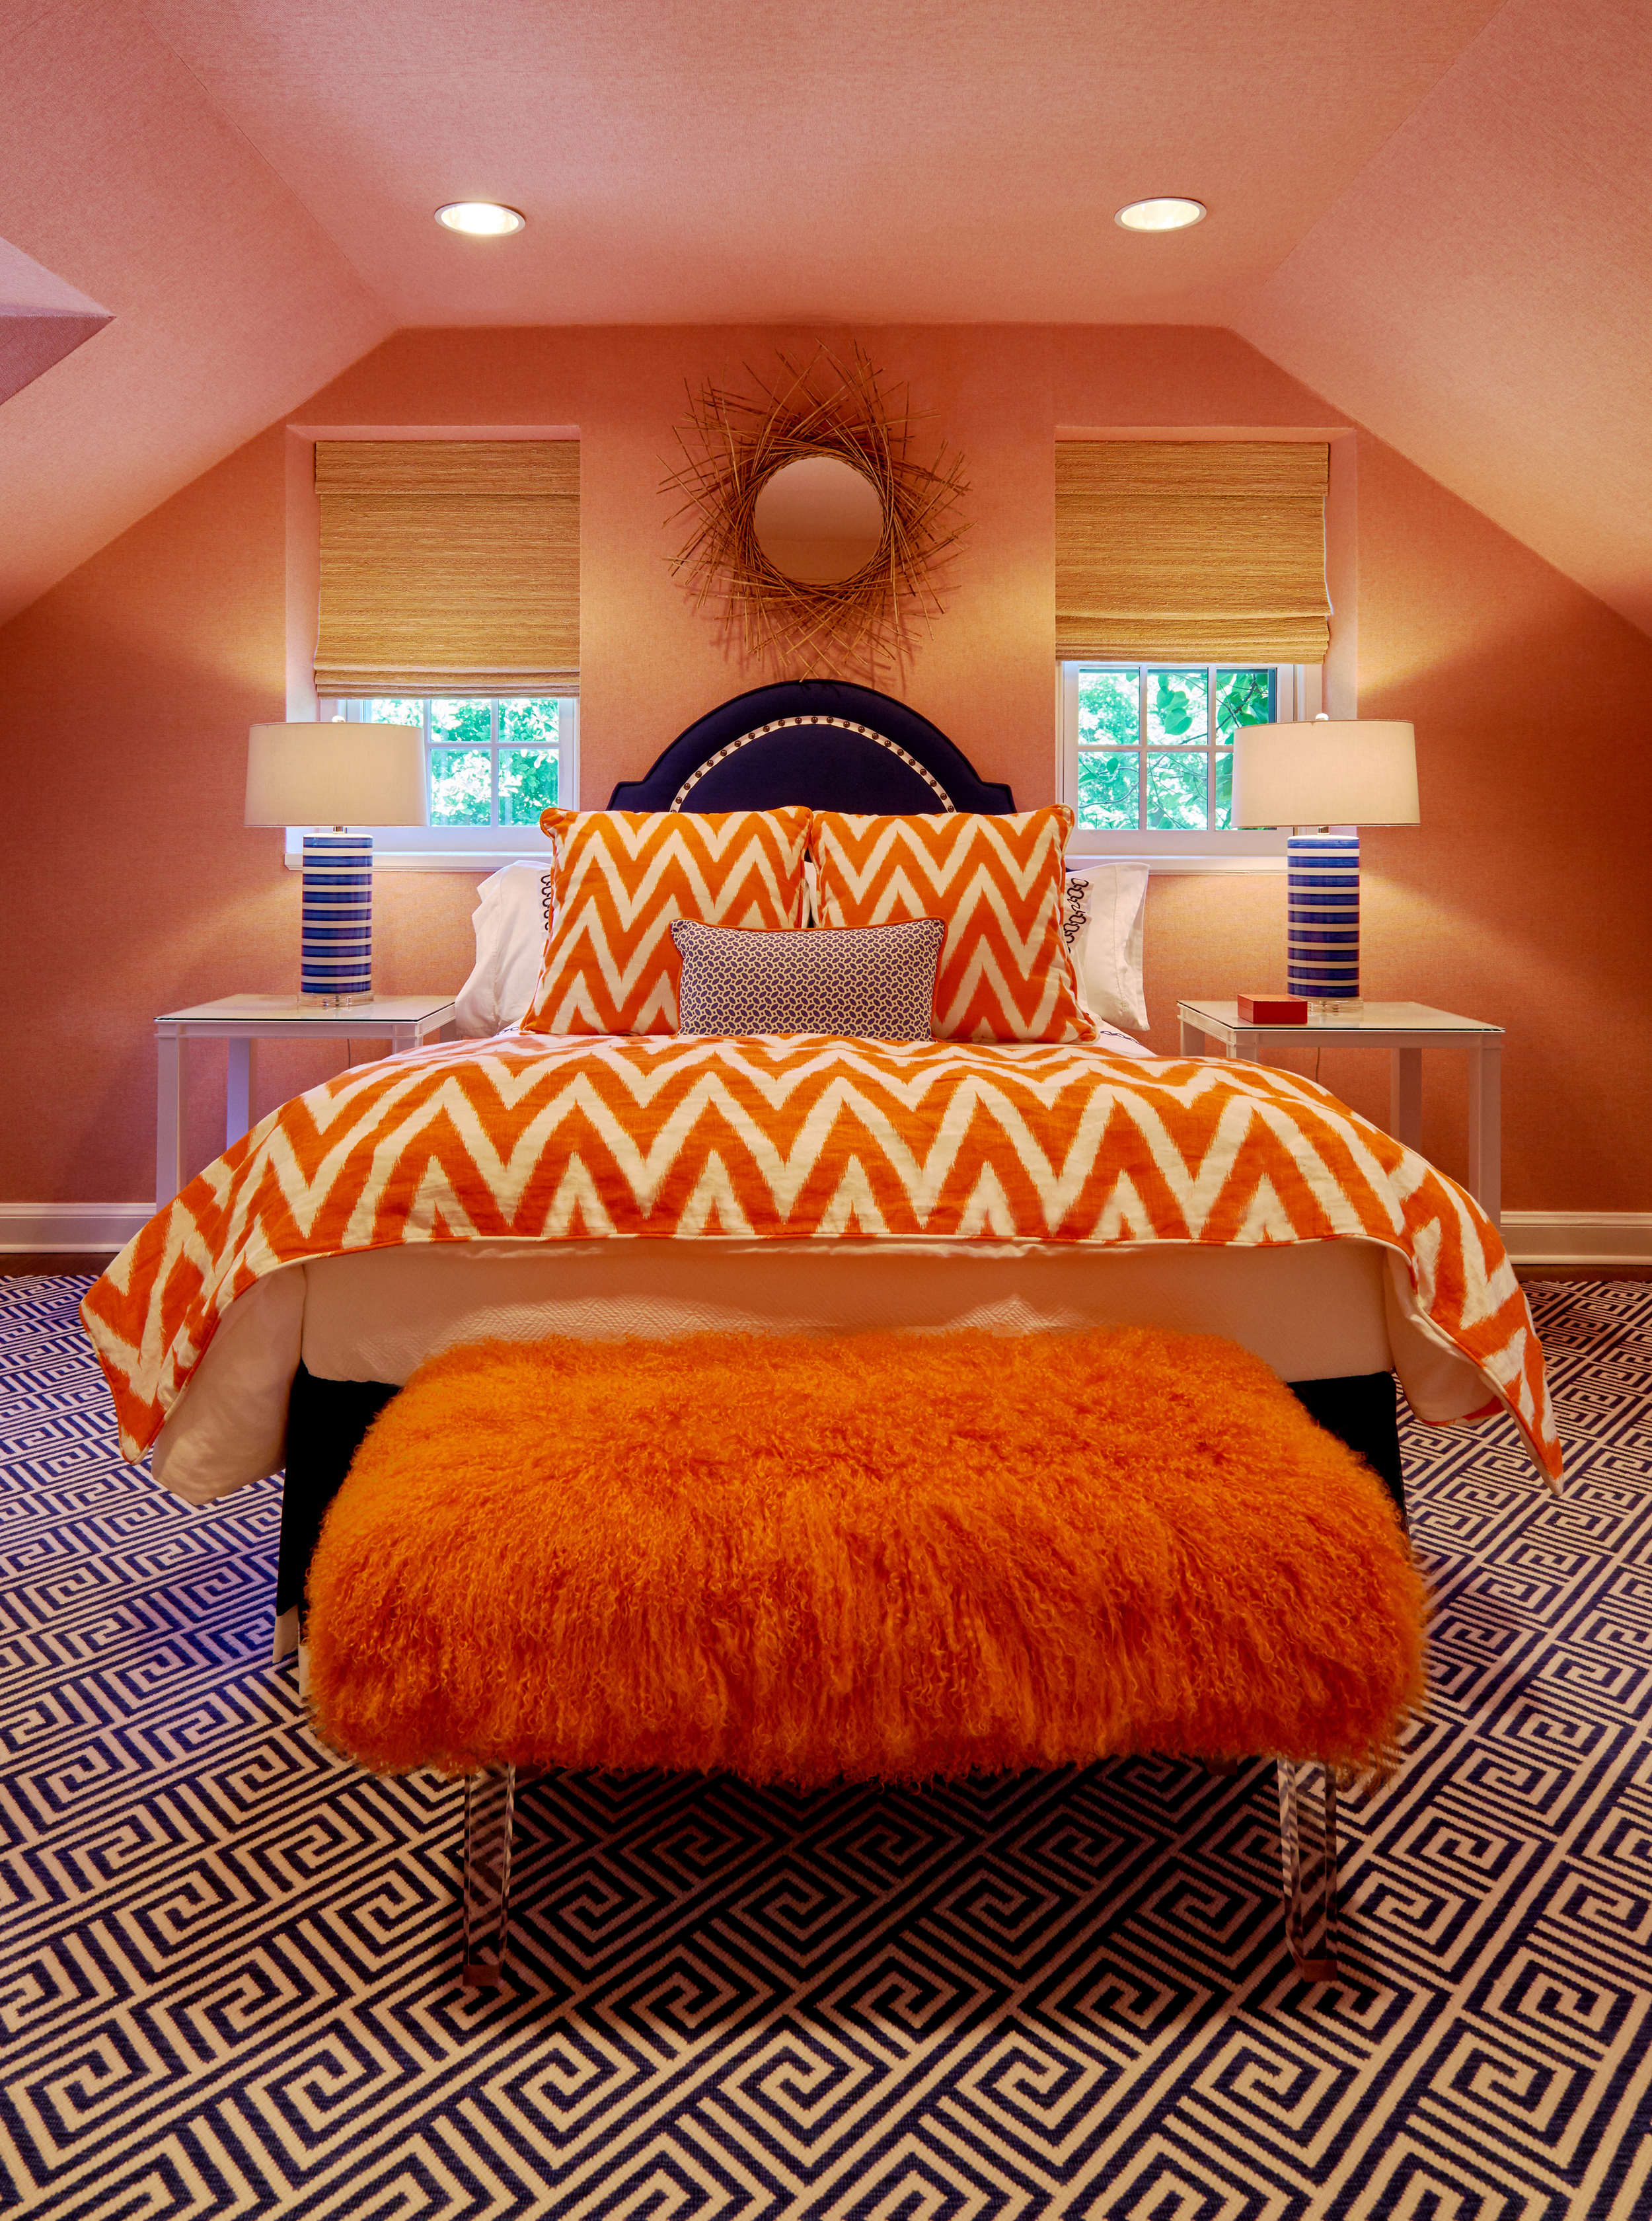 Furry bench on lucite adds texture to this inviting guest room.